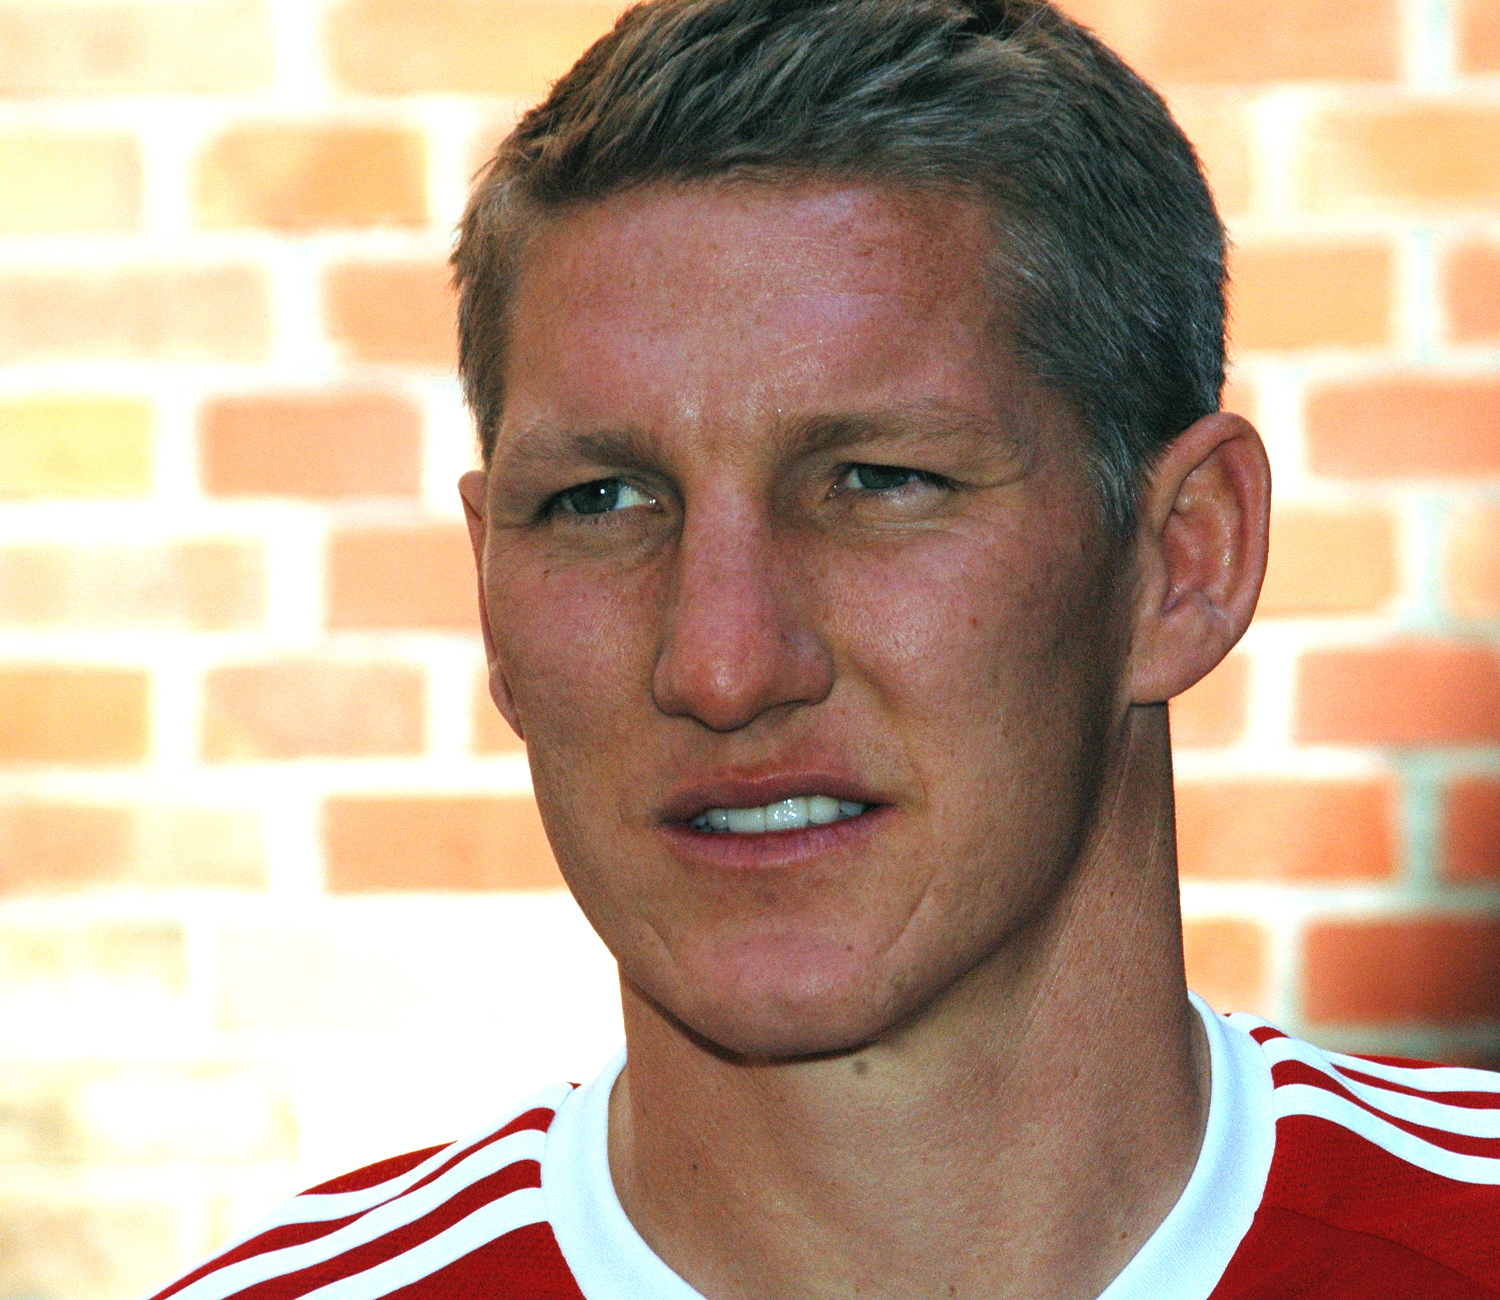 The 36-year old son of father (?) and mother(?) Bastian Schweinsteiger in 2020 photo. Bastian Schweinsteiger earned a 14 million dollar salary - leaving the net worth at 50 million in 2020